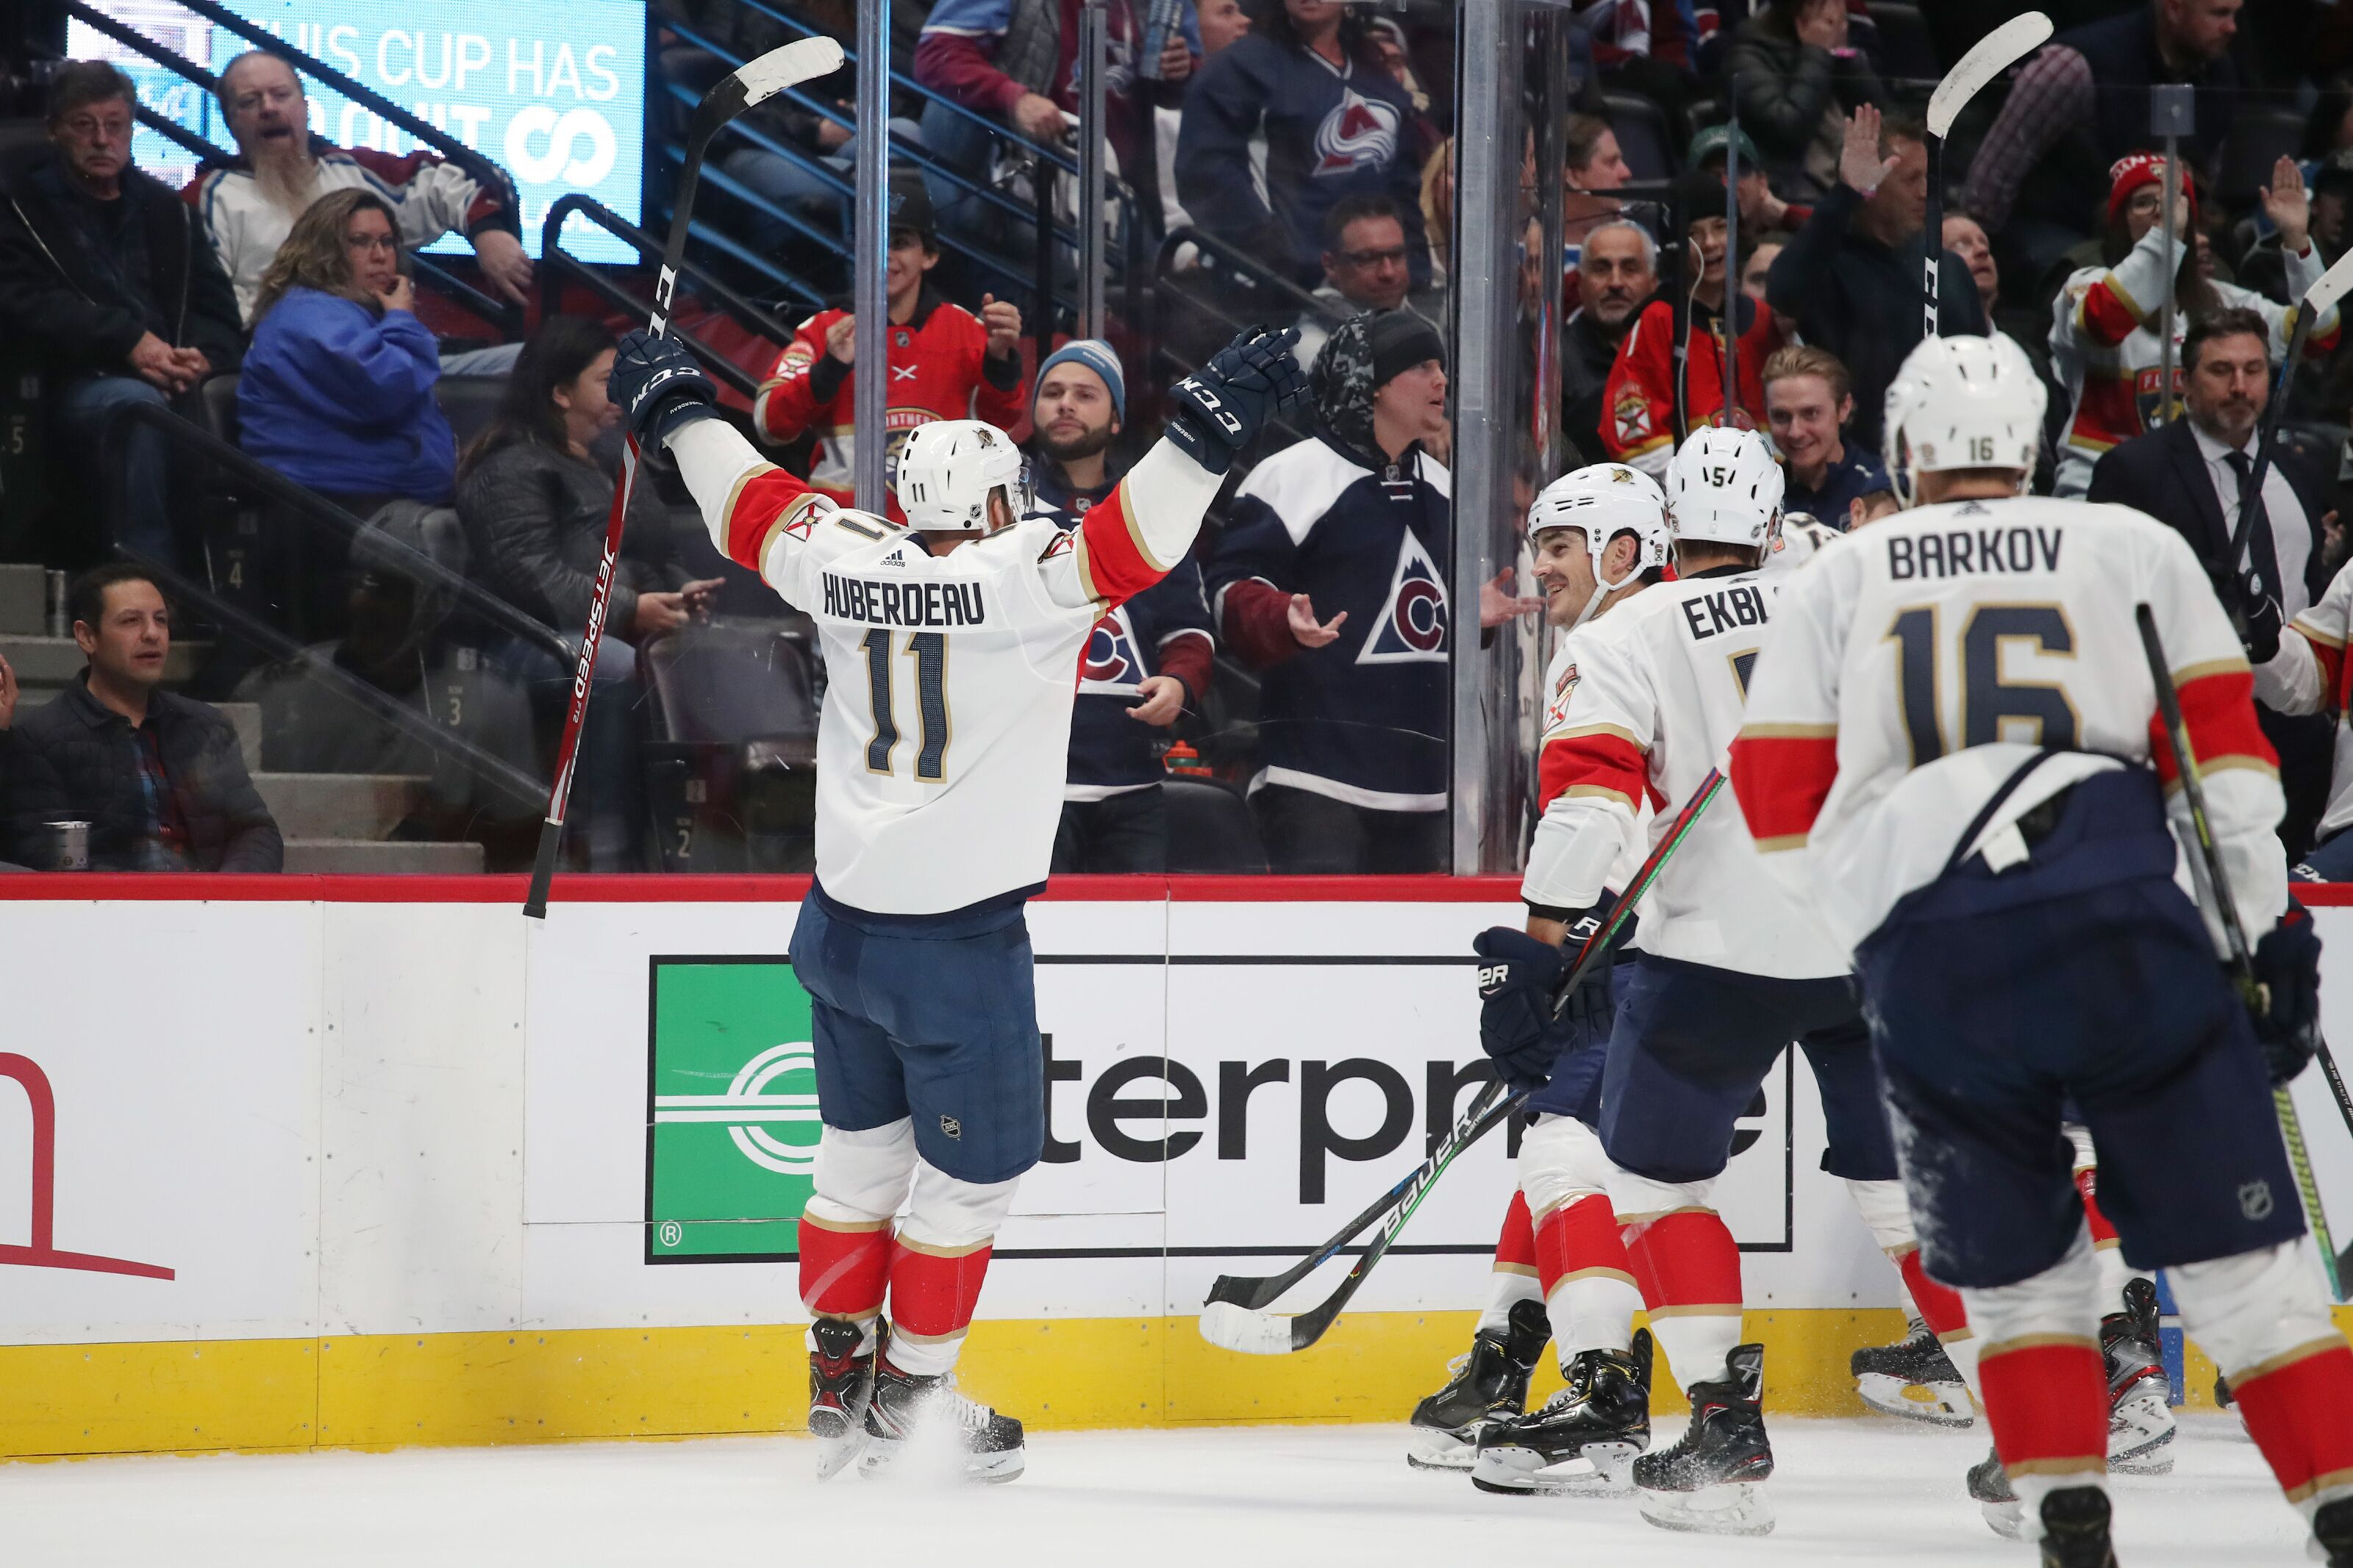 Florida Panthers: After 13 Games, How Good are the Cats Exactly?